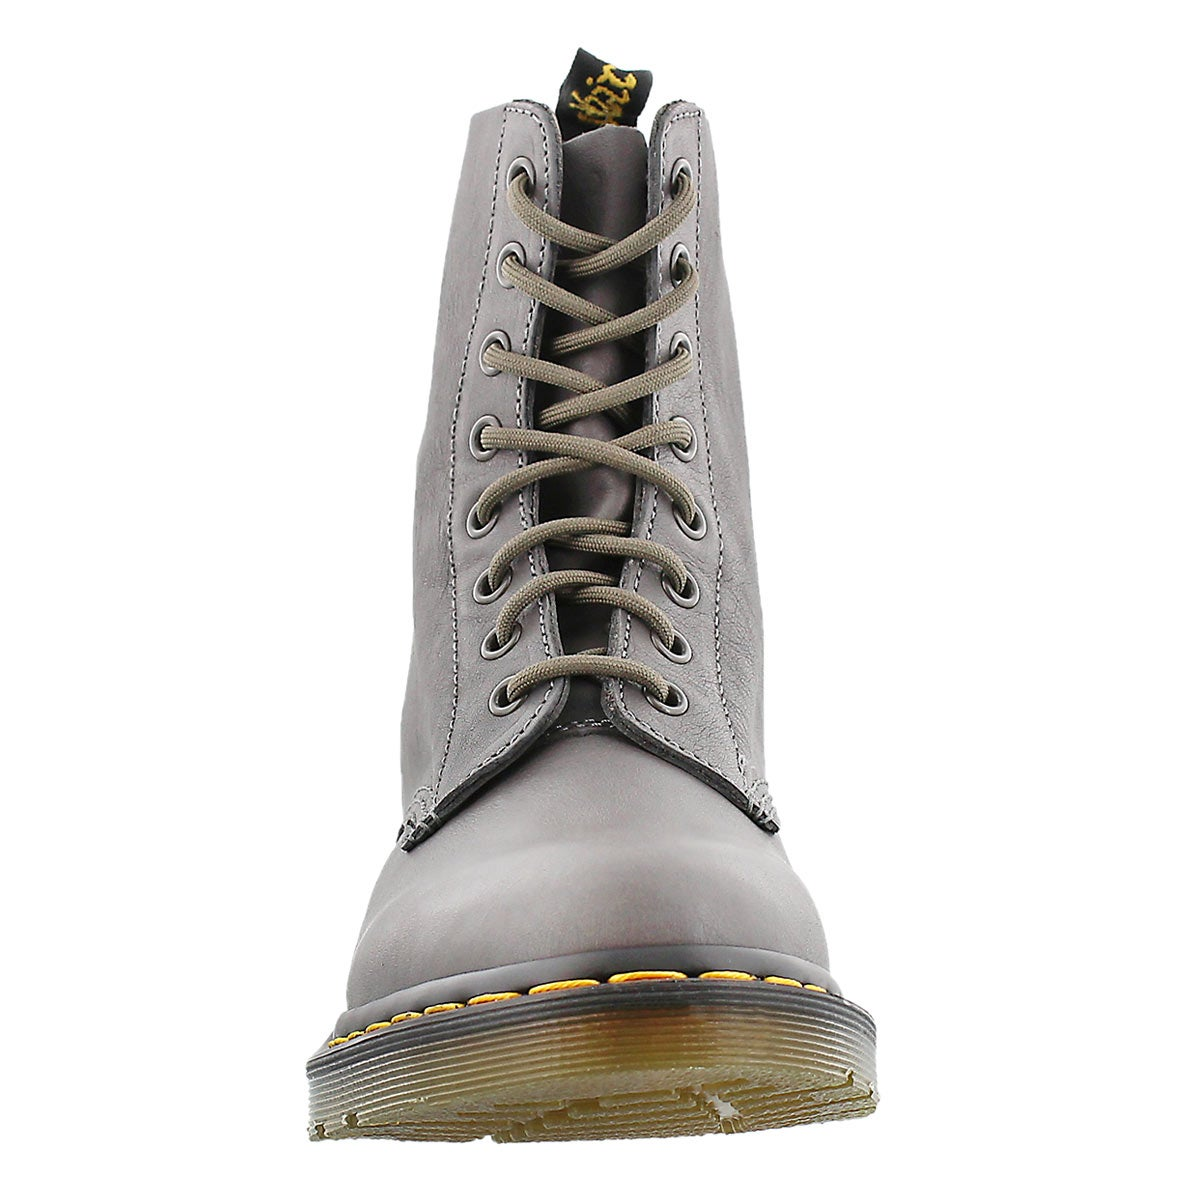 Lds Pascal 8-Eye lead soft leather boot